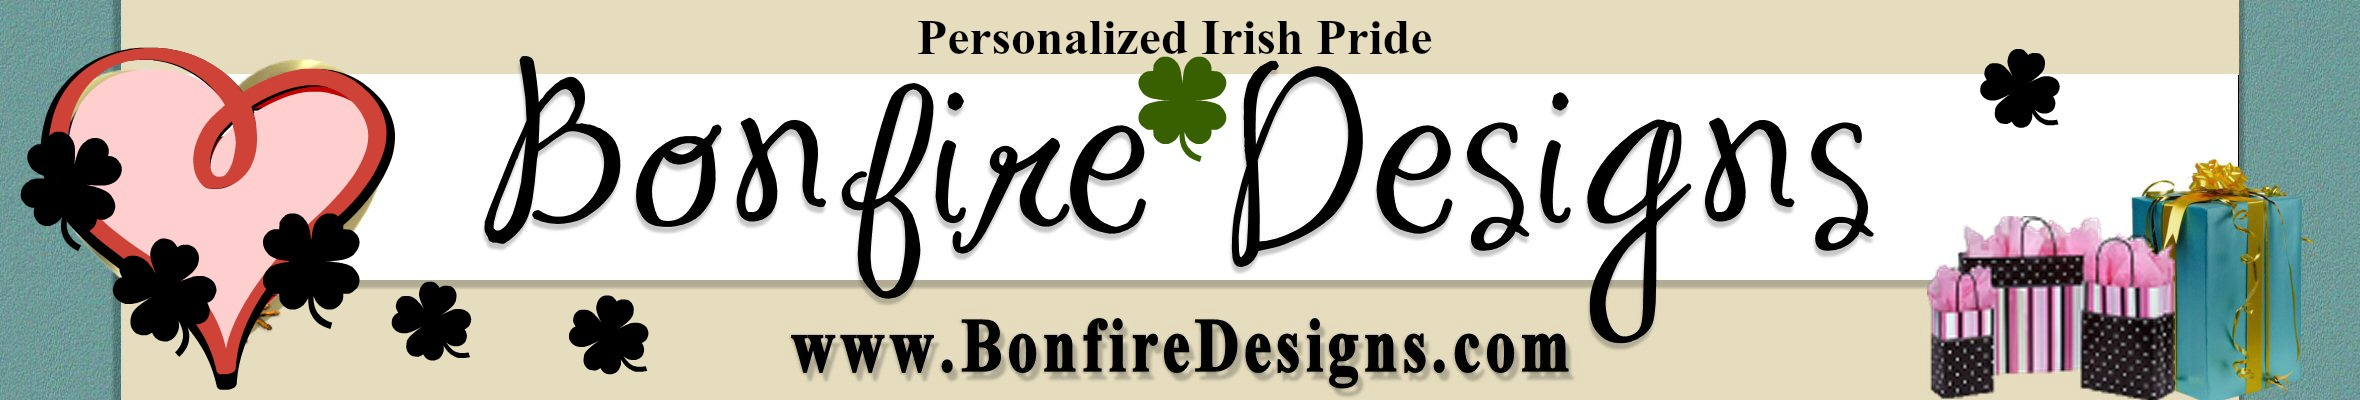 Irish Shirts and Gifts Personalized